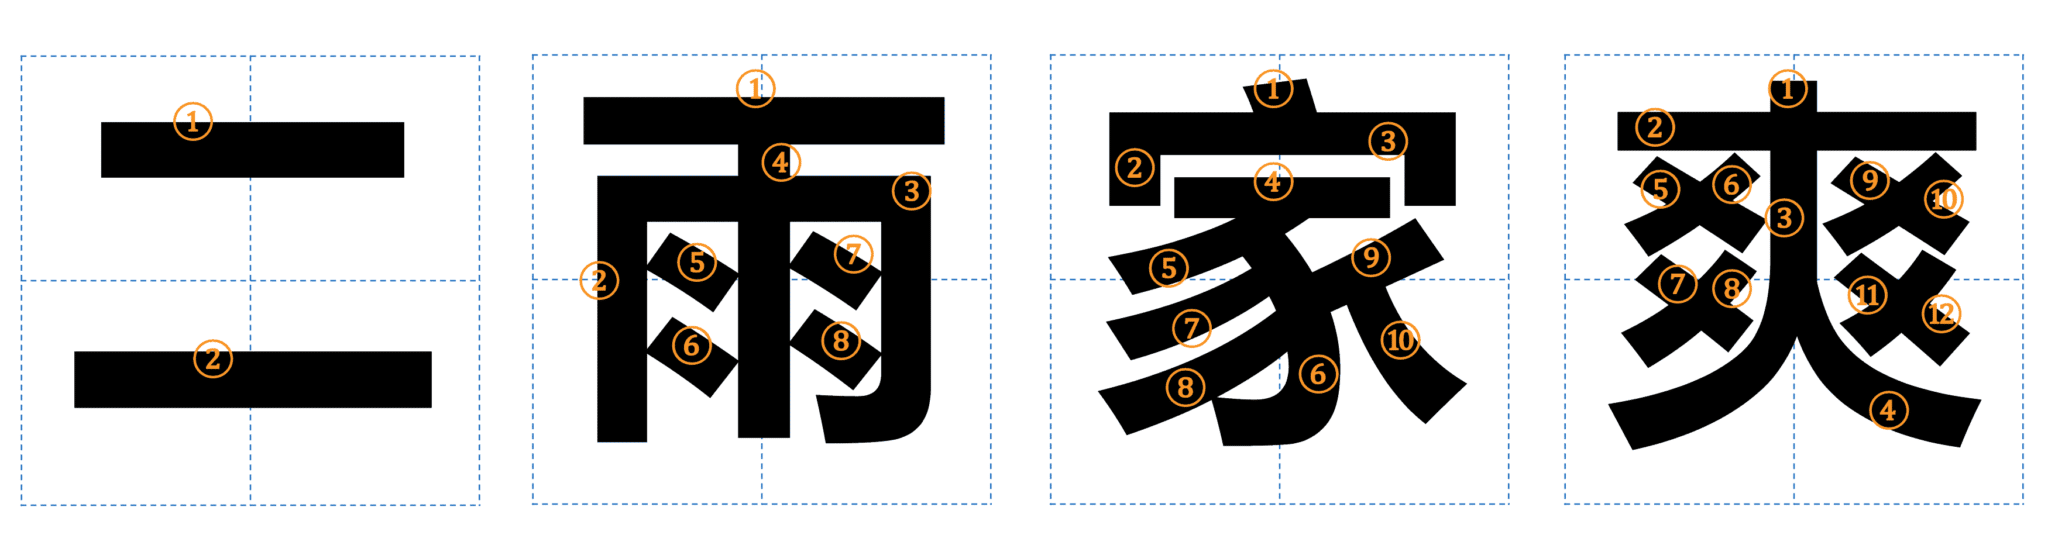 Sample Chinese characters